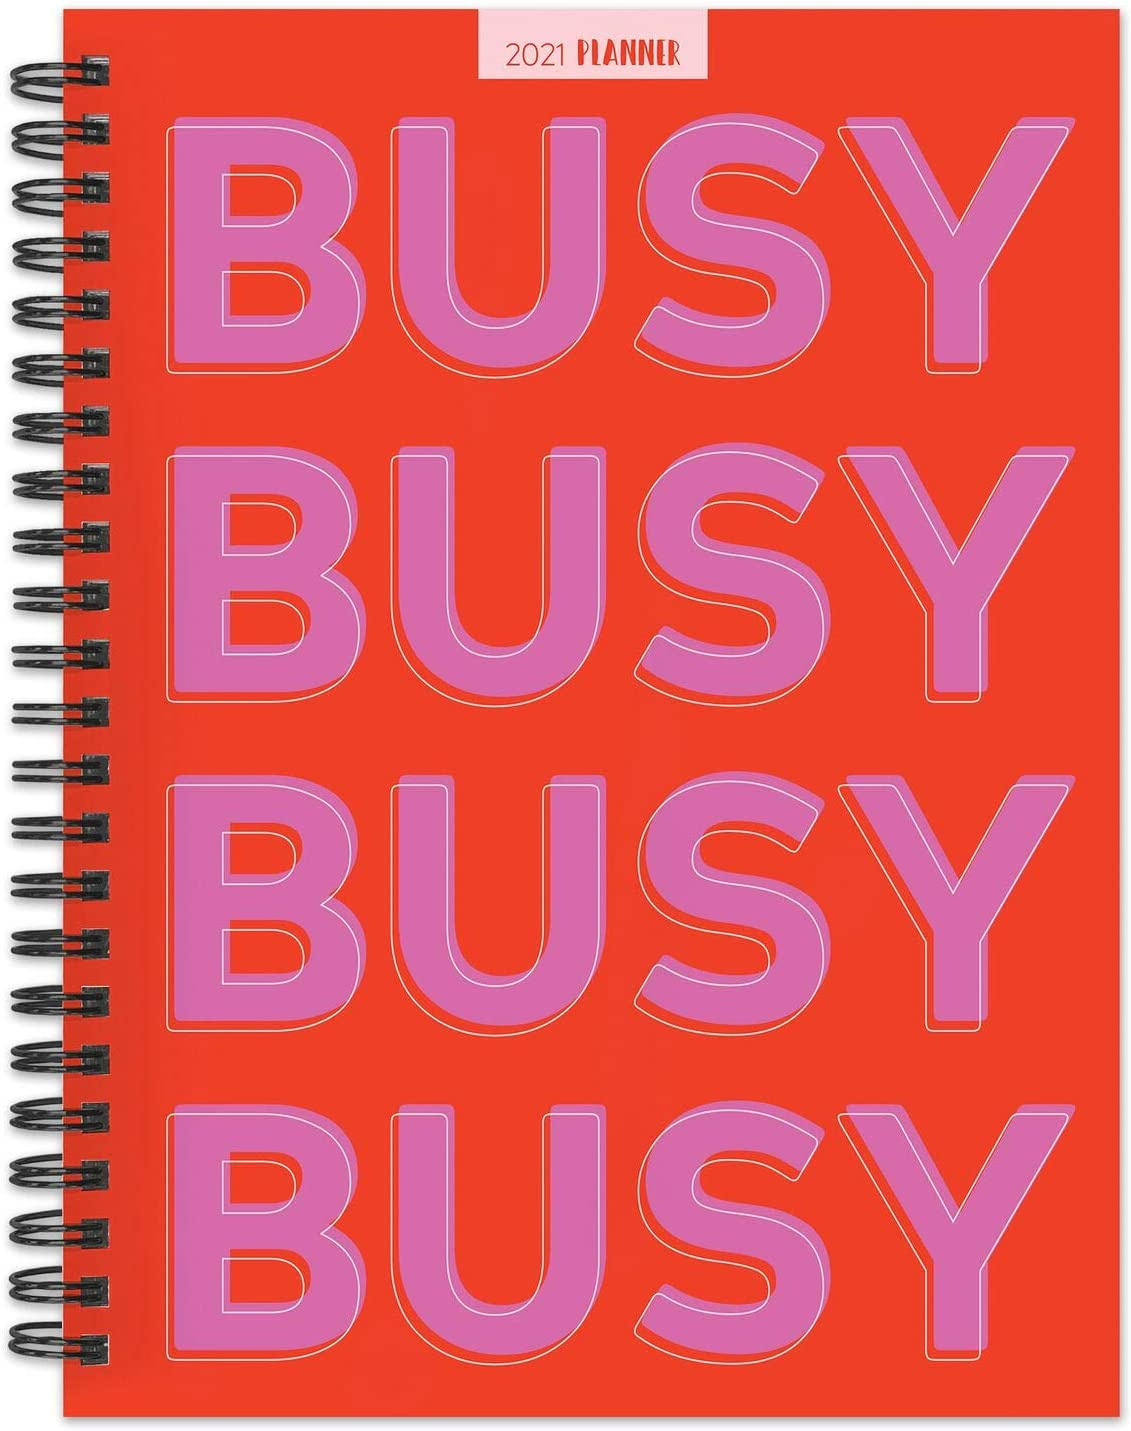 "TF PUBLISHING 2021 Busy Busy Busy Medium Weekly Monthly Calendar Planner - Appointment, Agenda, Notes, Stickers - Home or Office Planning and Organization - Premium Thick Uncoated Paper 6.5""x8"""